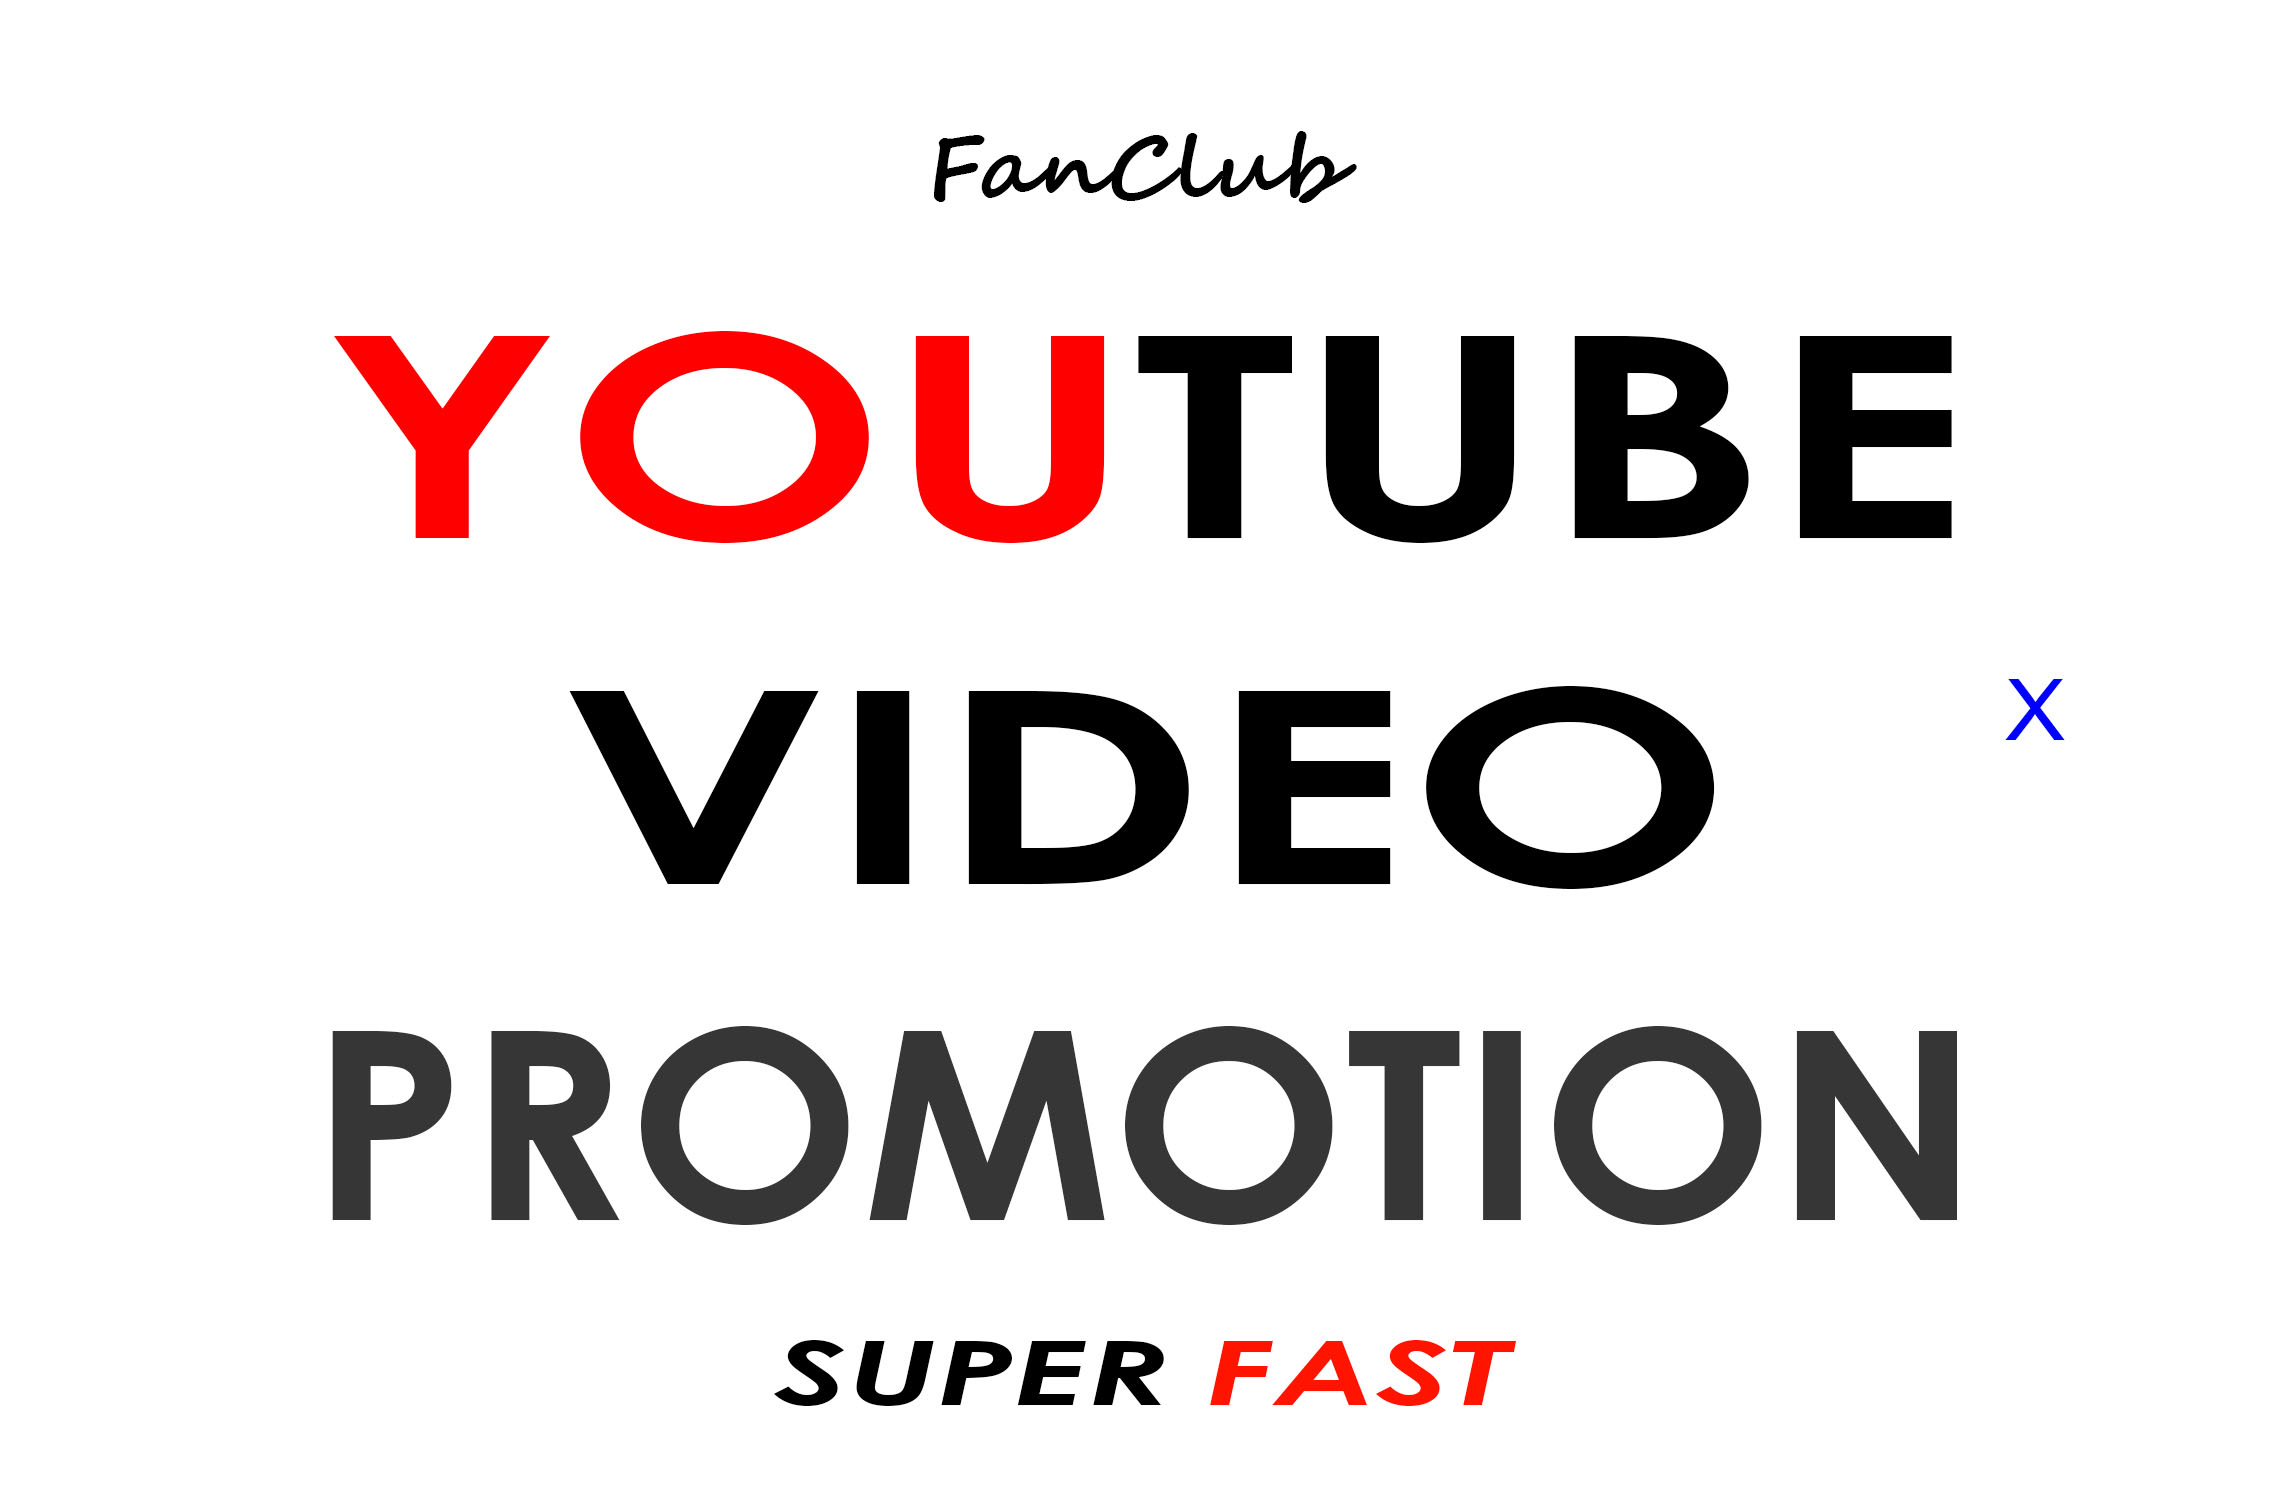 YOUTUBE VIDEO PROMOTION AND MARKETING REAL ORGANIC SERVICE